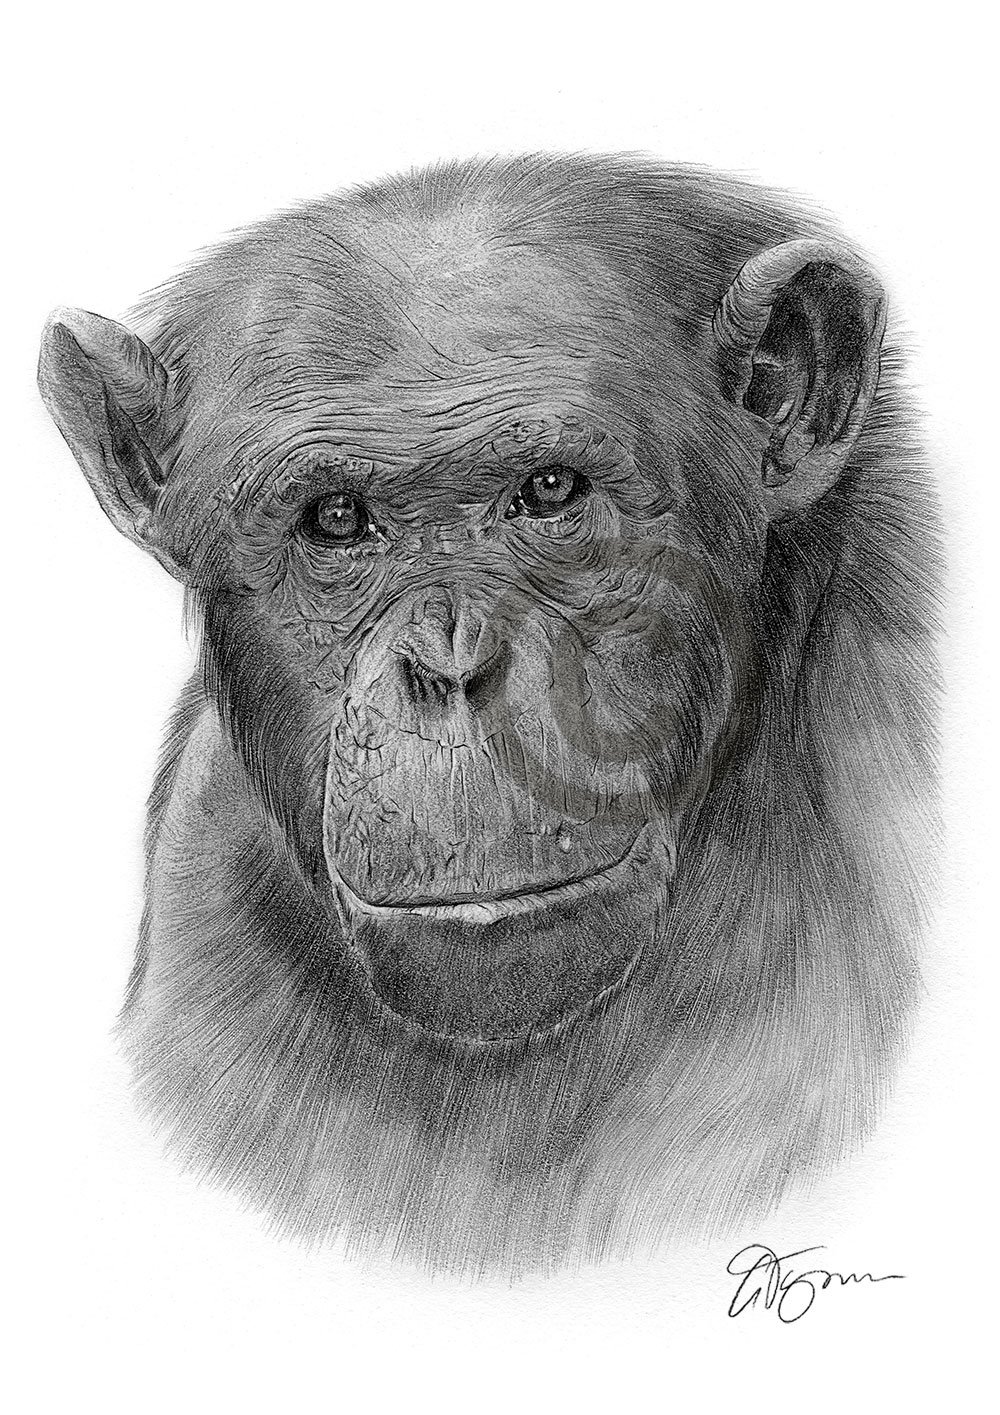 Pencil drawing of an adult chimpanzee by artist Gary Tymon